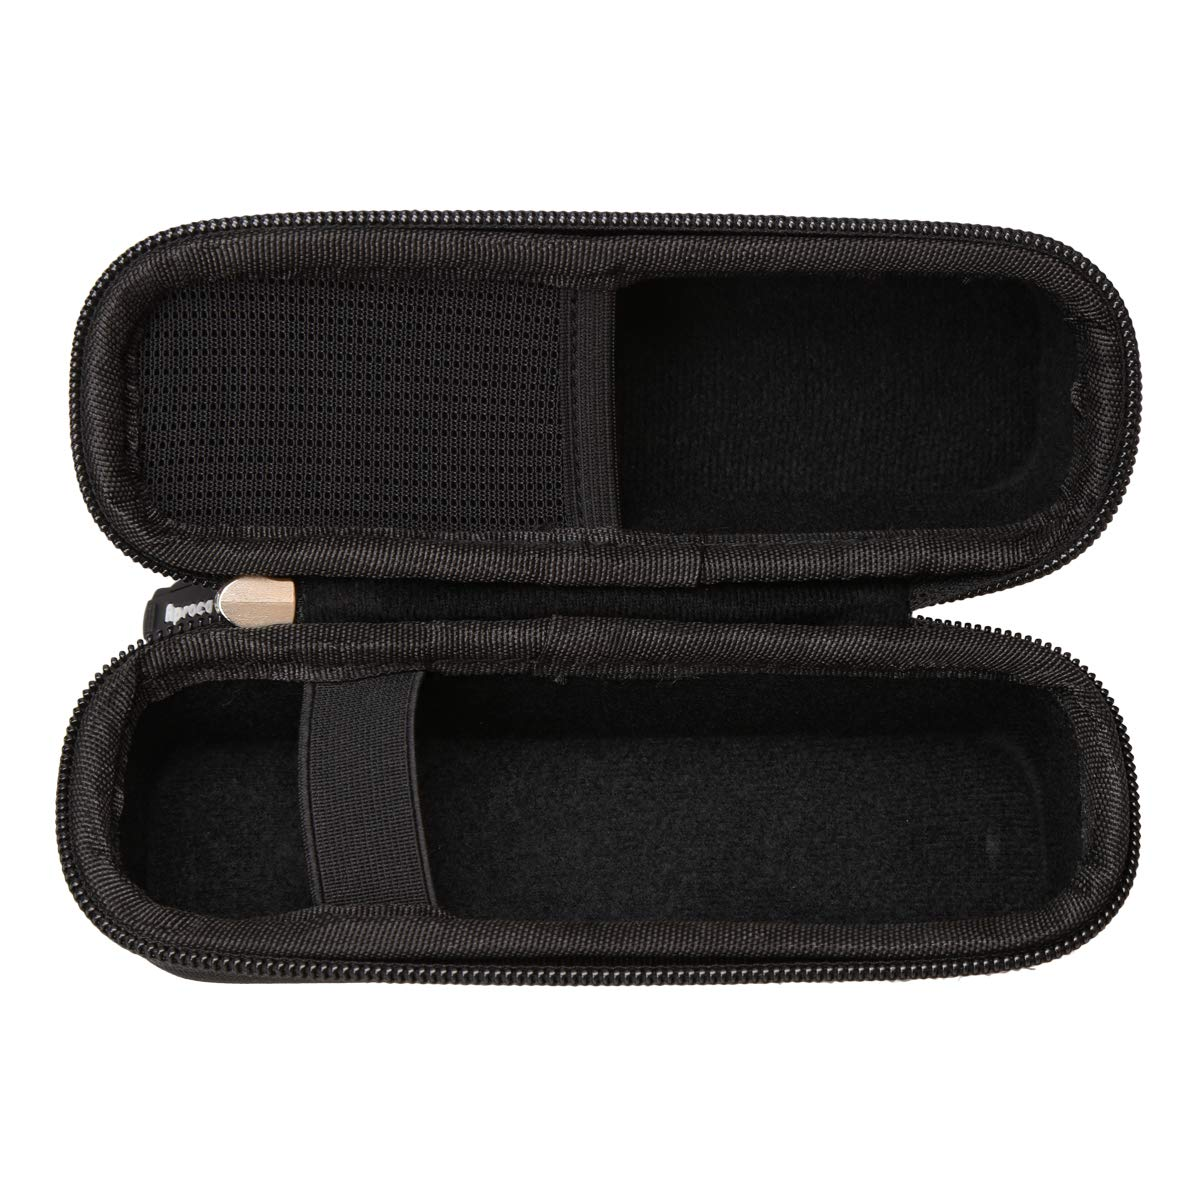 Hard Carrying Travel Case Bag for QQcute Digital Infrared Forehead Thermometer by Aproca by Aproca (Image #2)